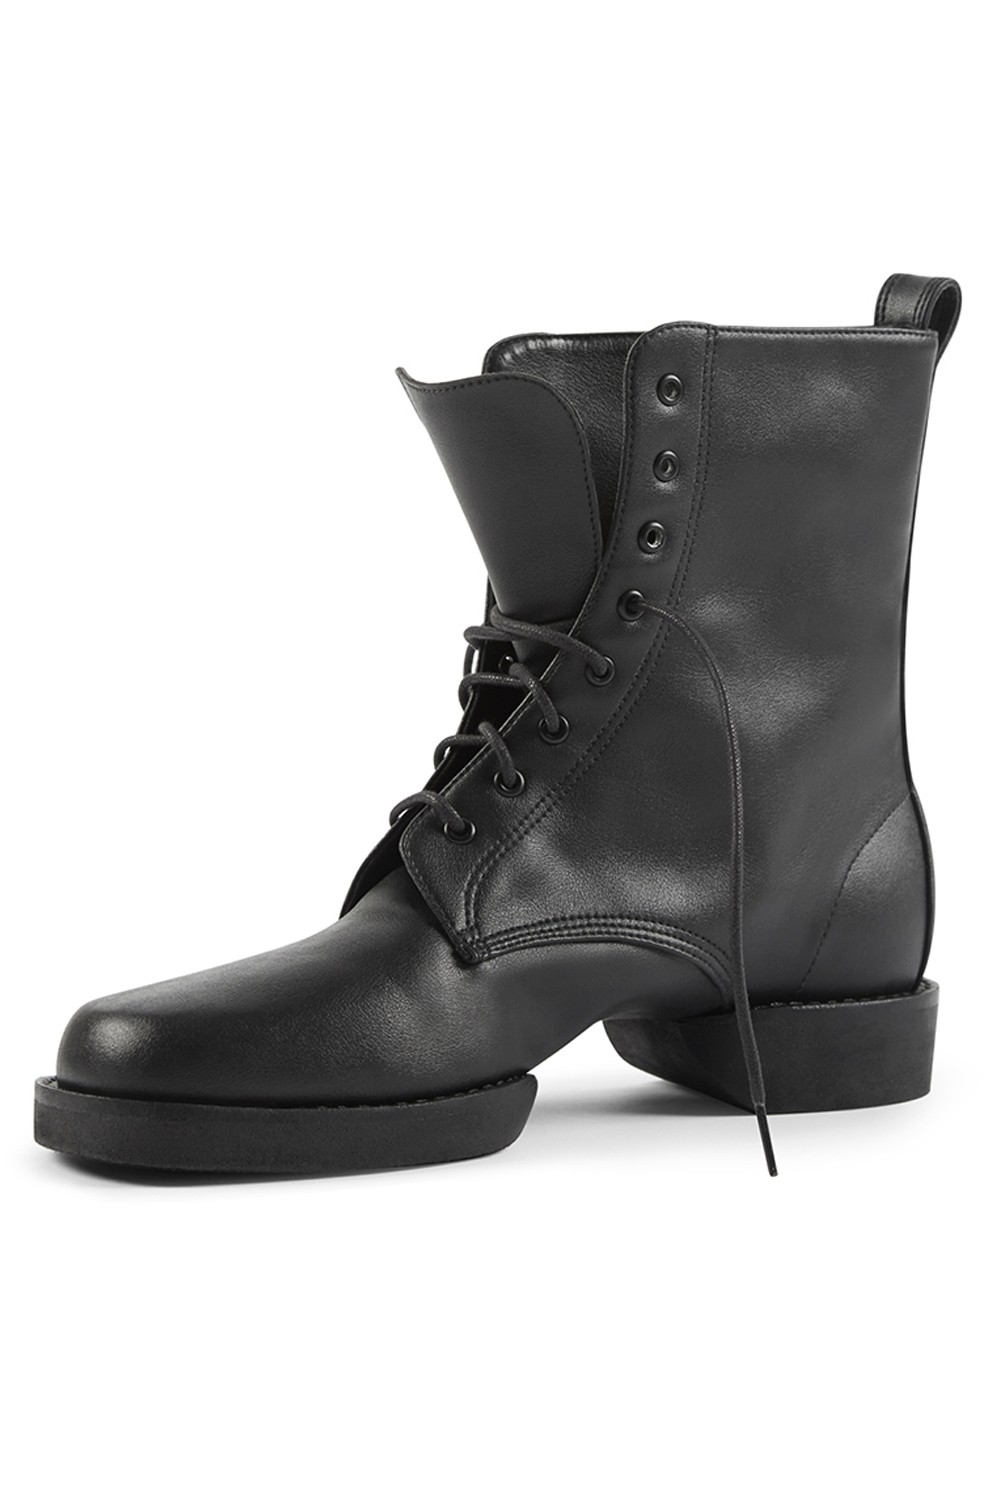 Militaire Tanz-stiefel Split Sole Dance Shoes